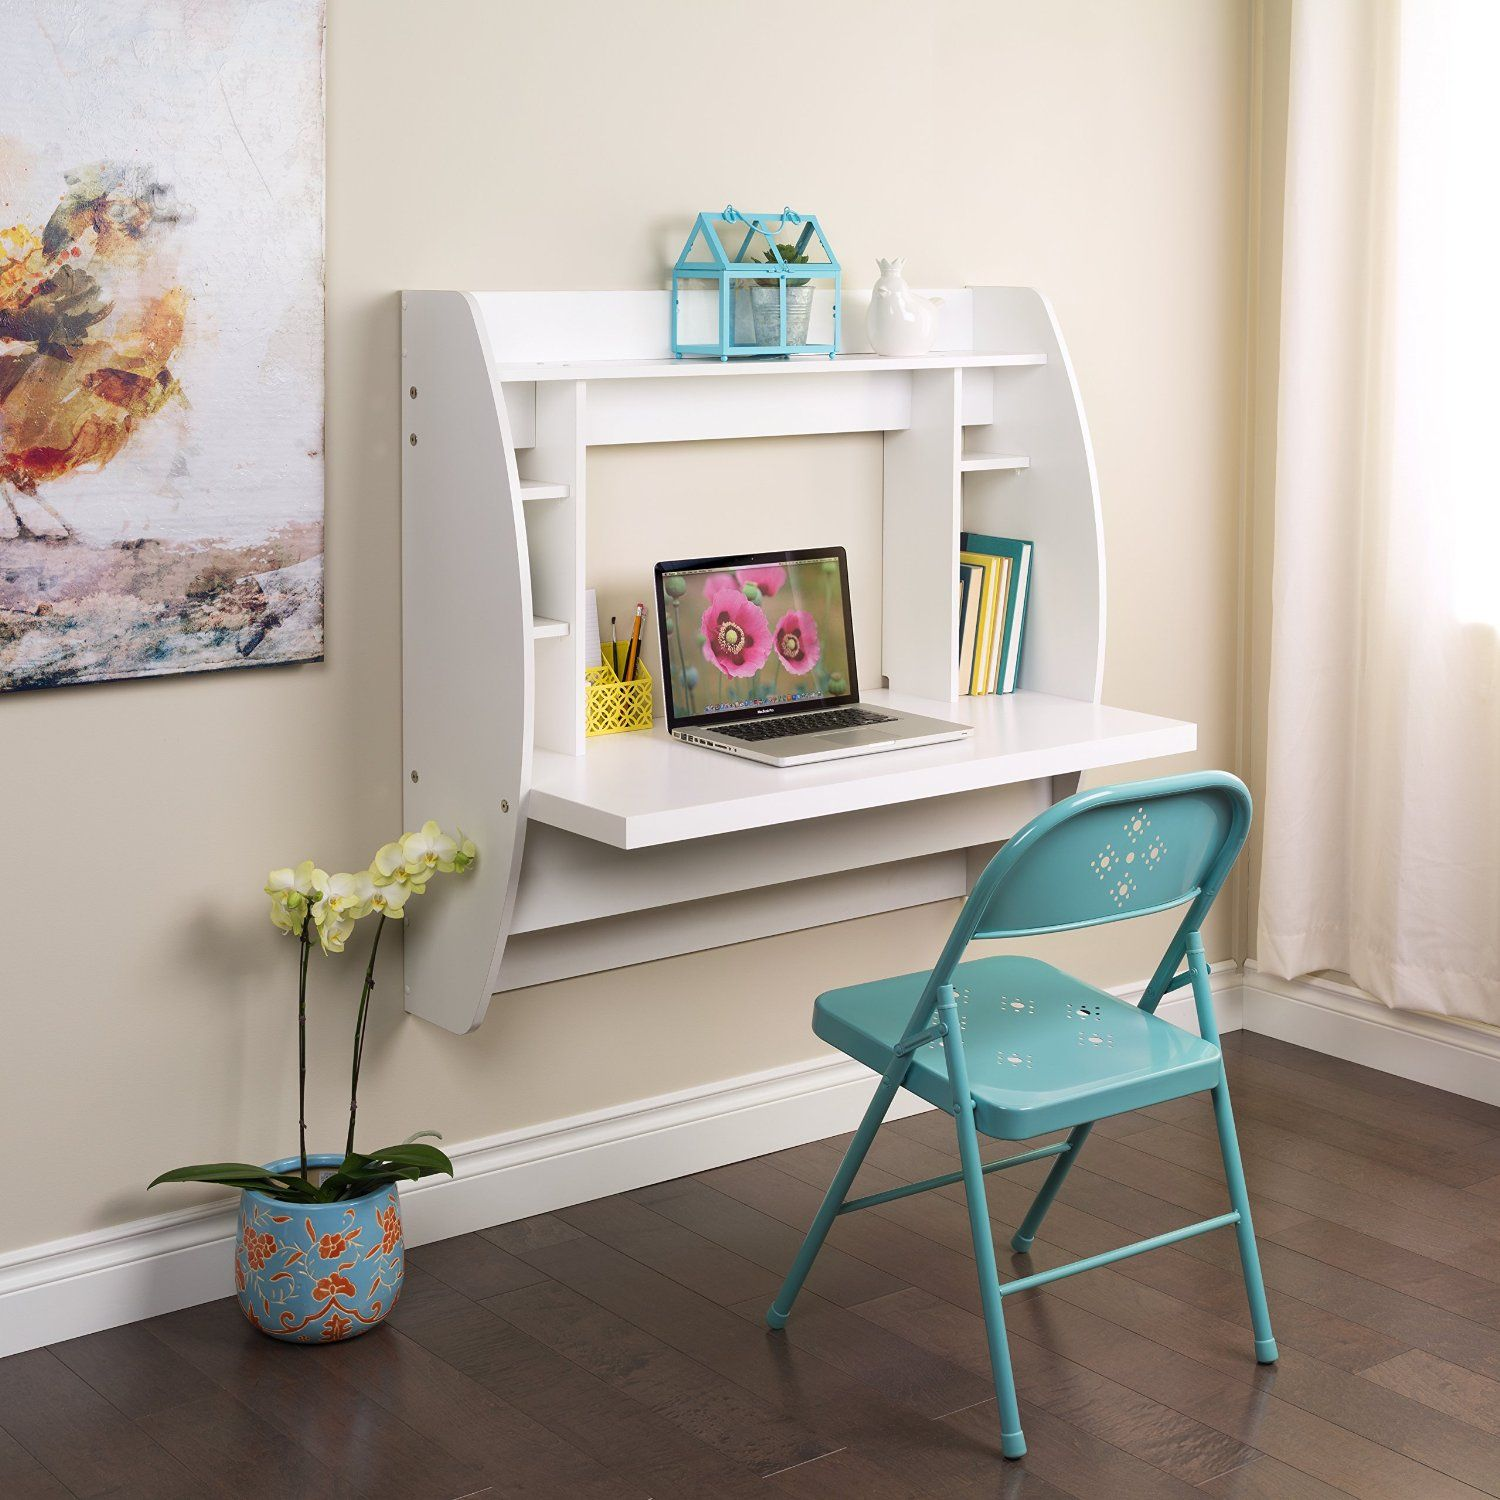 Floating puter Desk with Storage